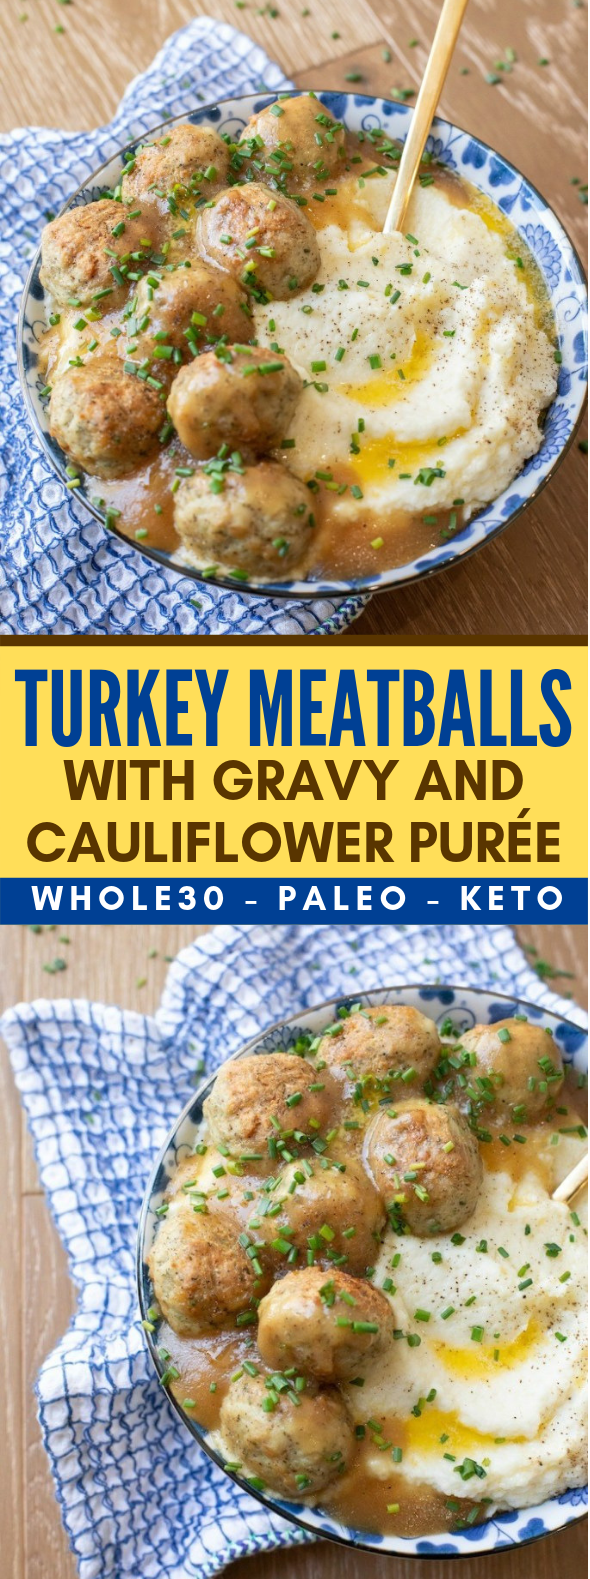 TURKEY MEATBALLS WITH GRAVY AND CAULIFLOWER PURÉE (WHOLE30-PALEO-KETO) #healthy #diet